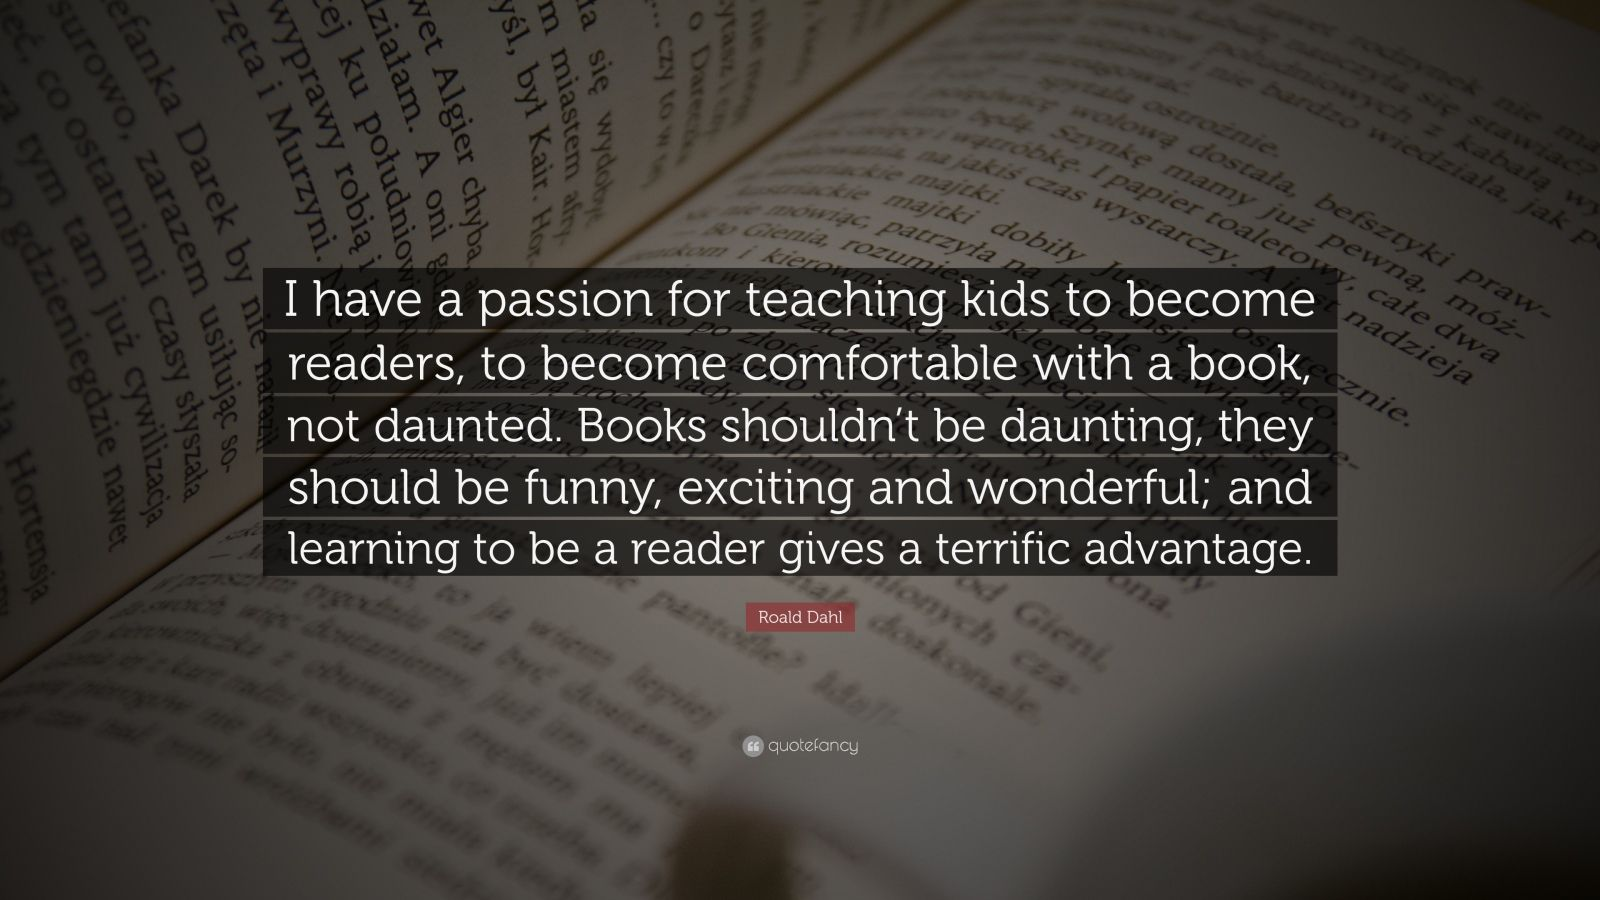 """Roald Dahl Quote: """"I have a passion for teaching kids to become readers, to become comfortable with a book, not daunted. Books shouldn't be daunting, they should be funny, exciting and wonderful; and learning to be a reader gives a terrific advantage."""""""